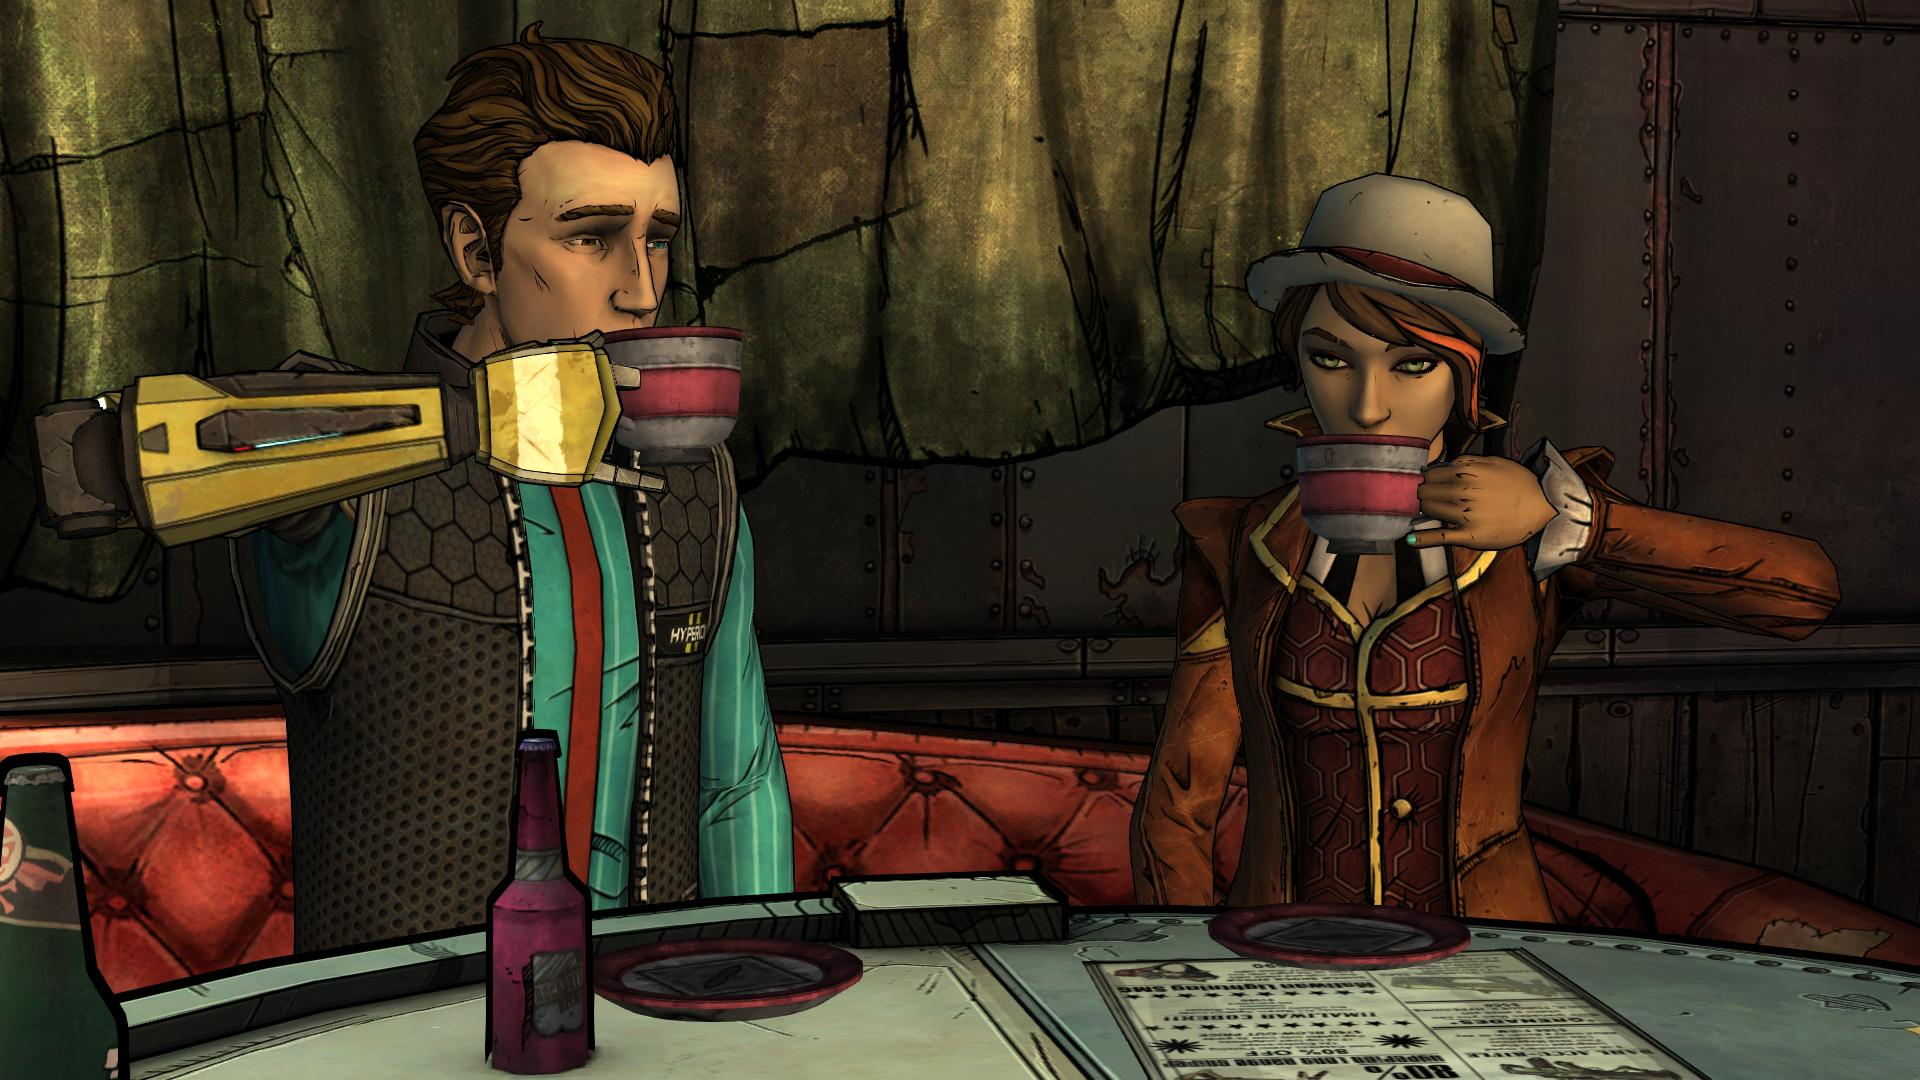 Nude tales from the borderlands cartoon movie